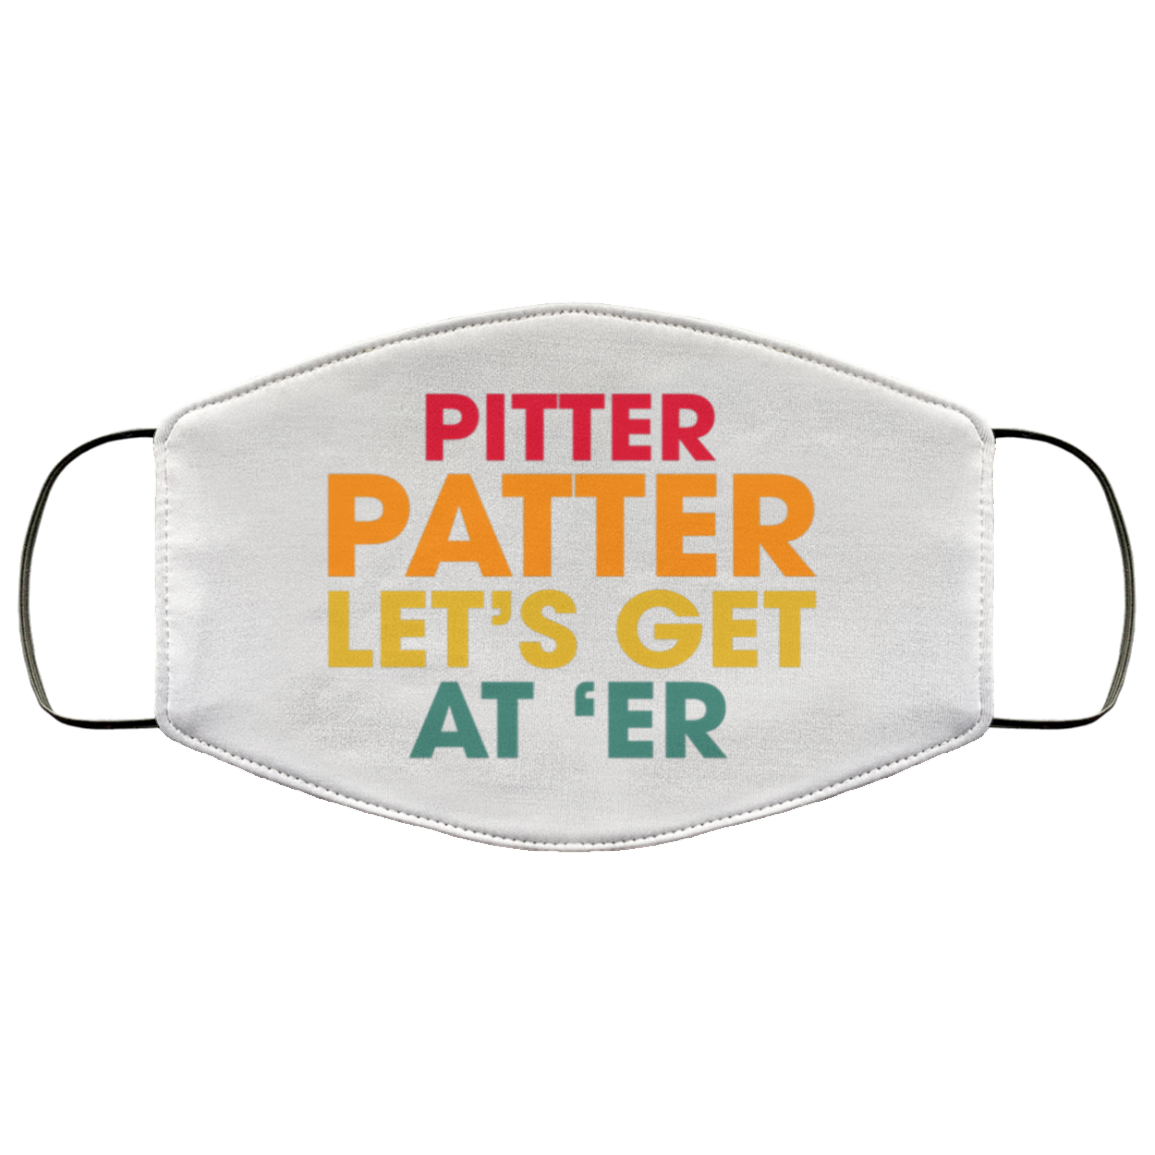 Letterkenny Pitter Patter Let/'s Get at /'Er License Plate from for US Cars